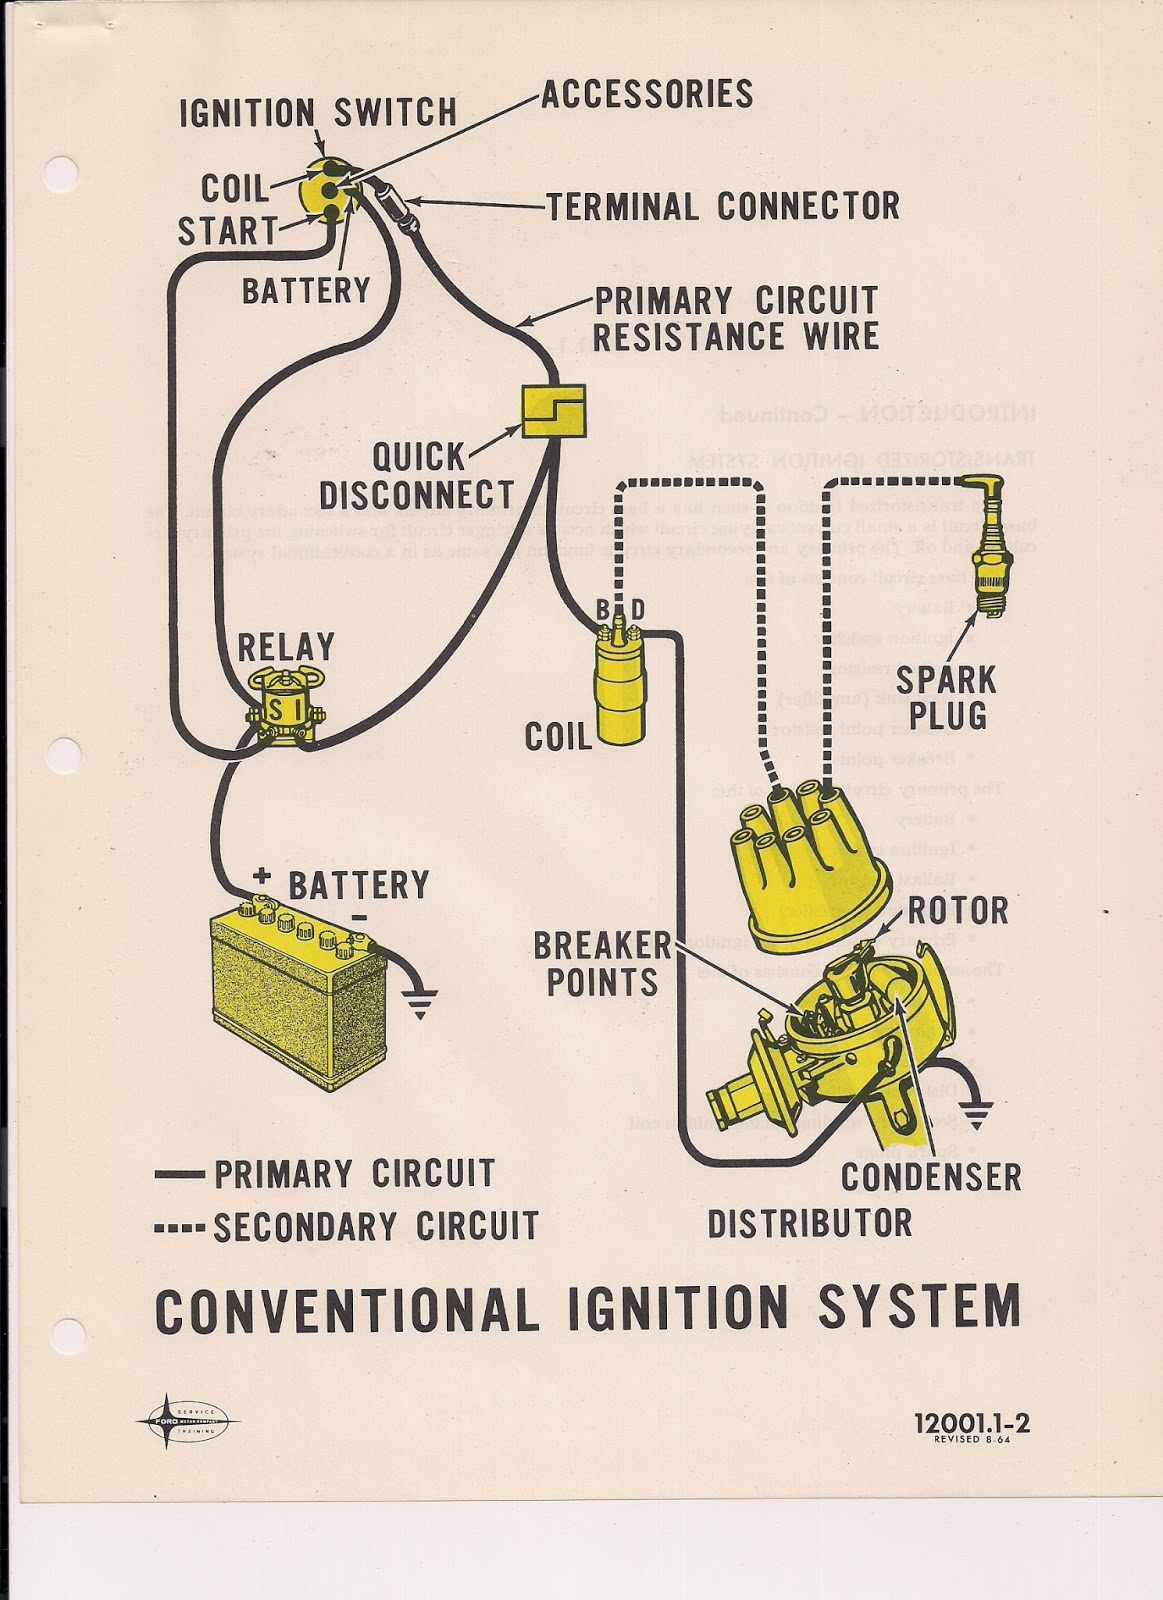 the care and feeding of ponies: mustang ignition system ... ingnition switch wiring diagram 89 mustang